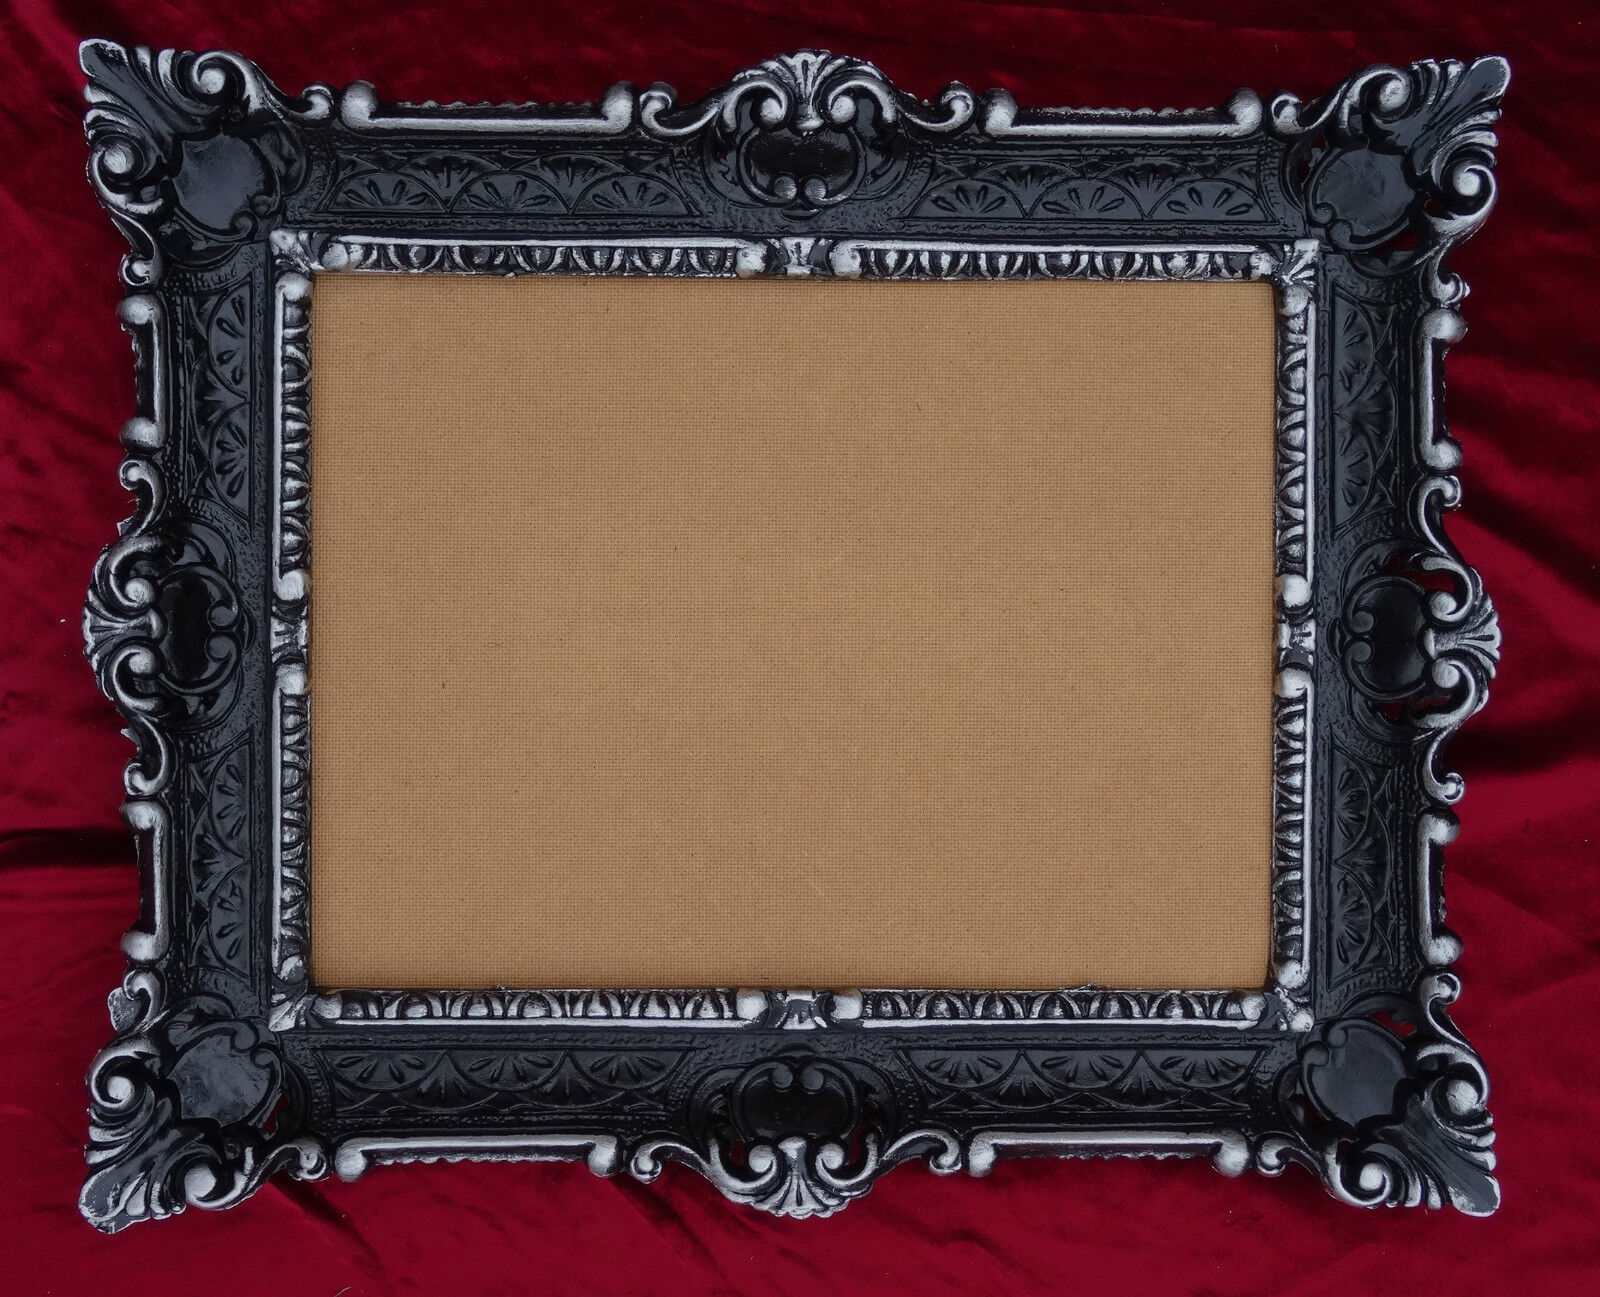 Antique Baroque Picture Frame In Black Silver 56x46 Photo